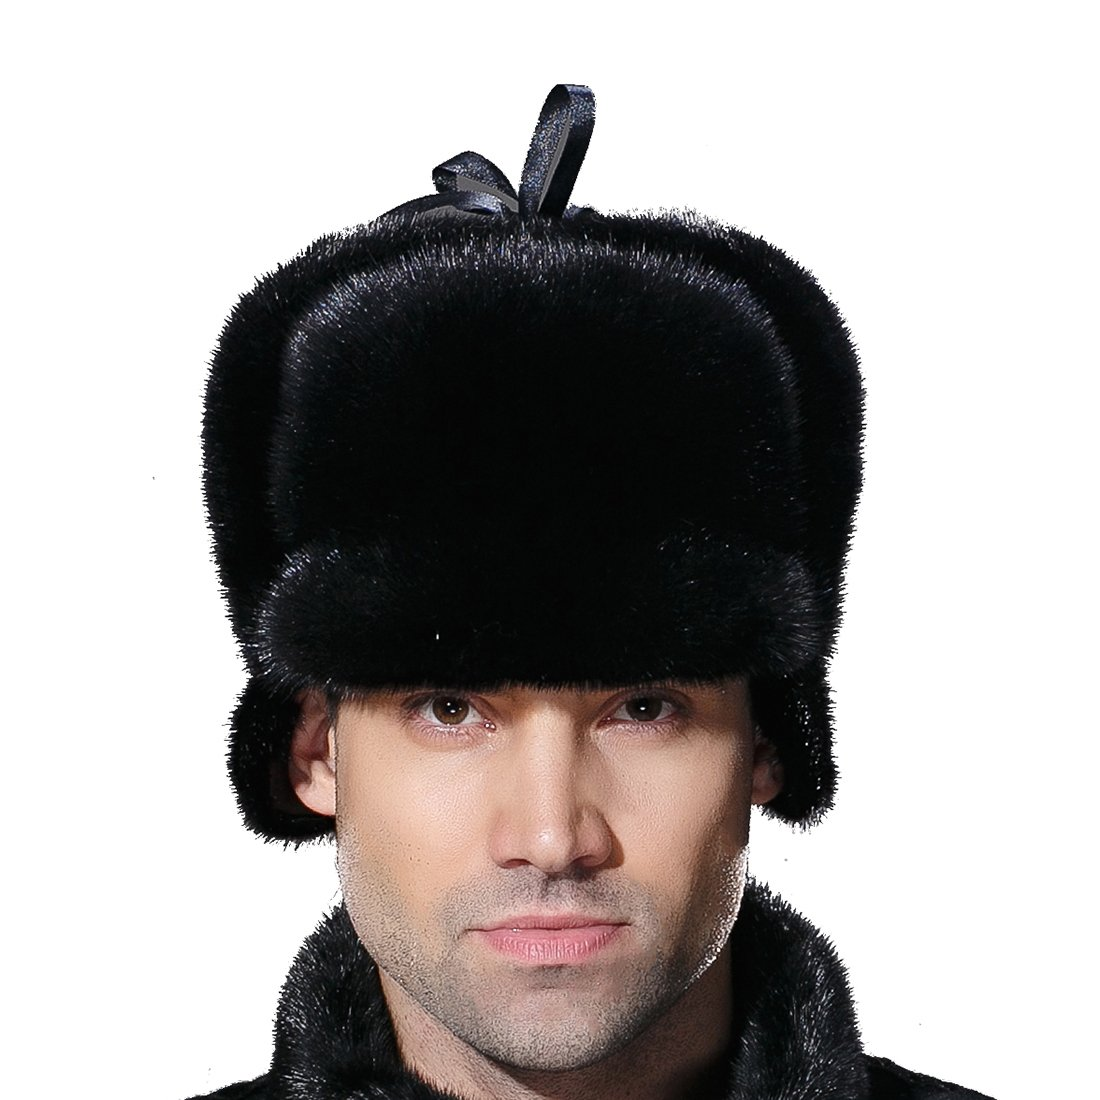 URSFUR Winter Men Fur Captain Hats Real Mink Fur Hunting Cap Black M by URSFUR